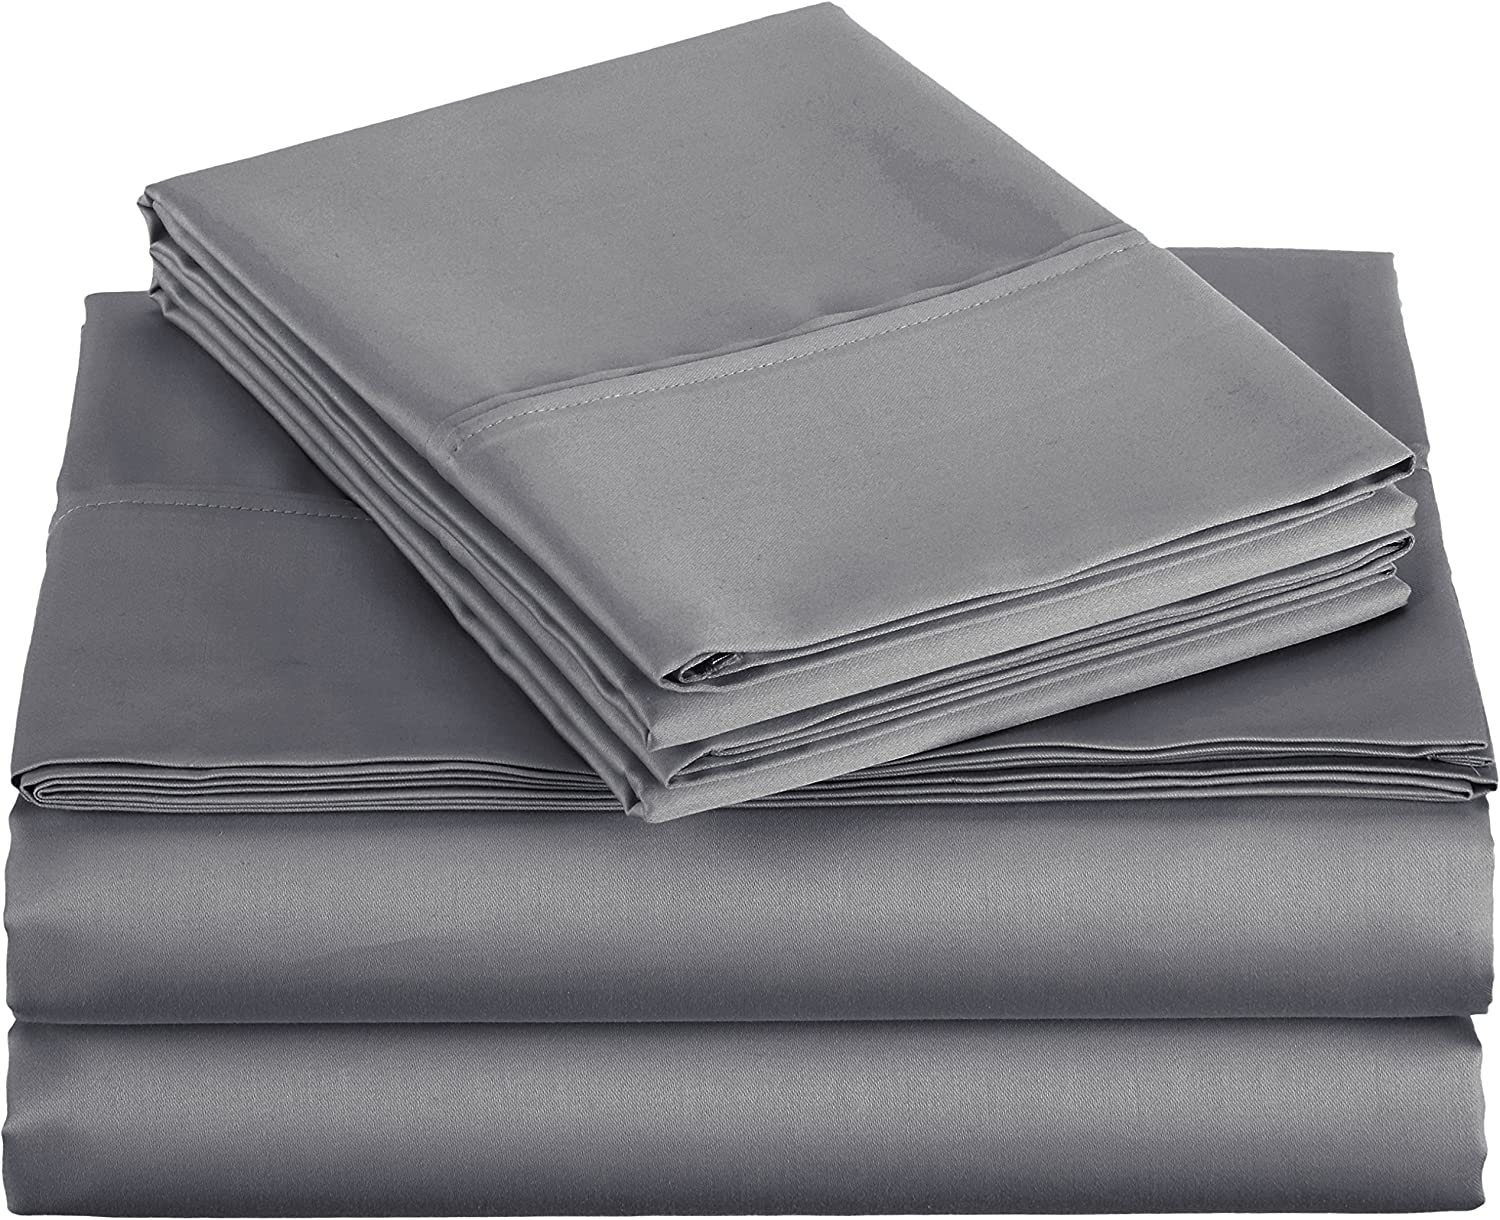 Basics 400 Thread Count Sheet Set, Queen, Dark Grey: Home & Kitchen